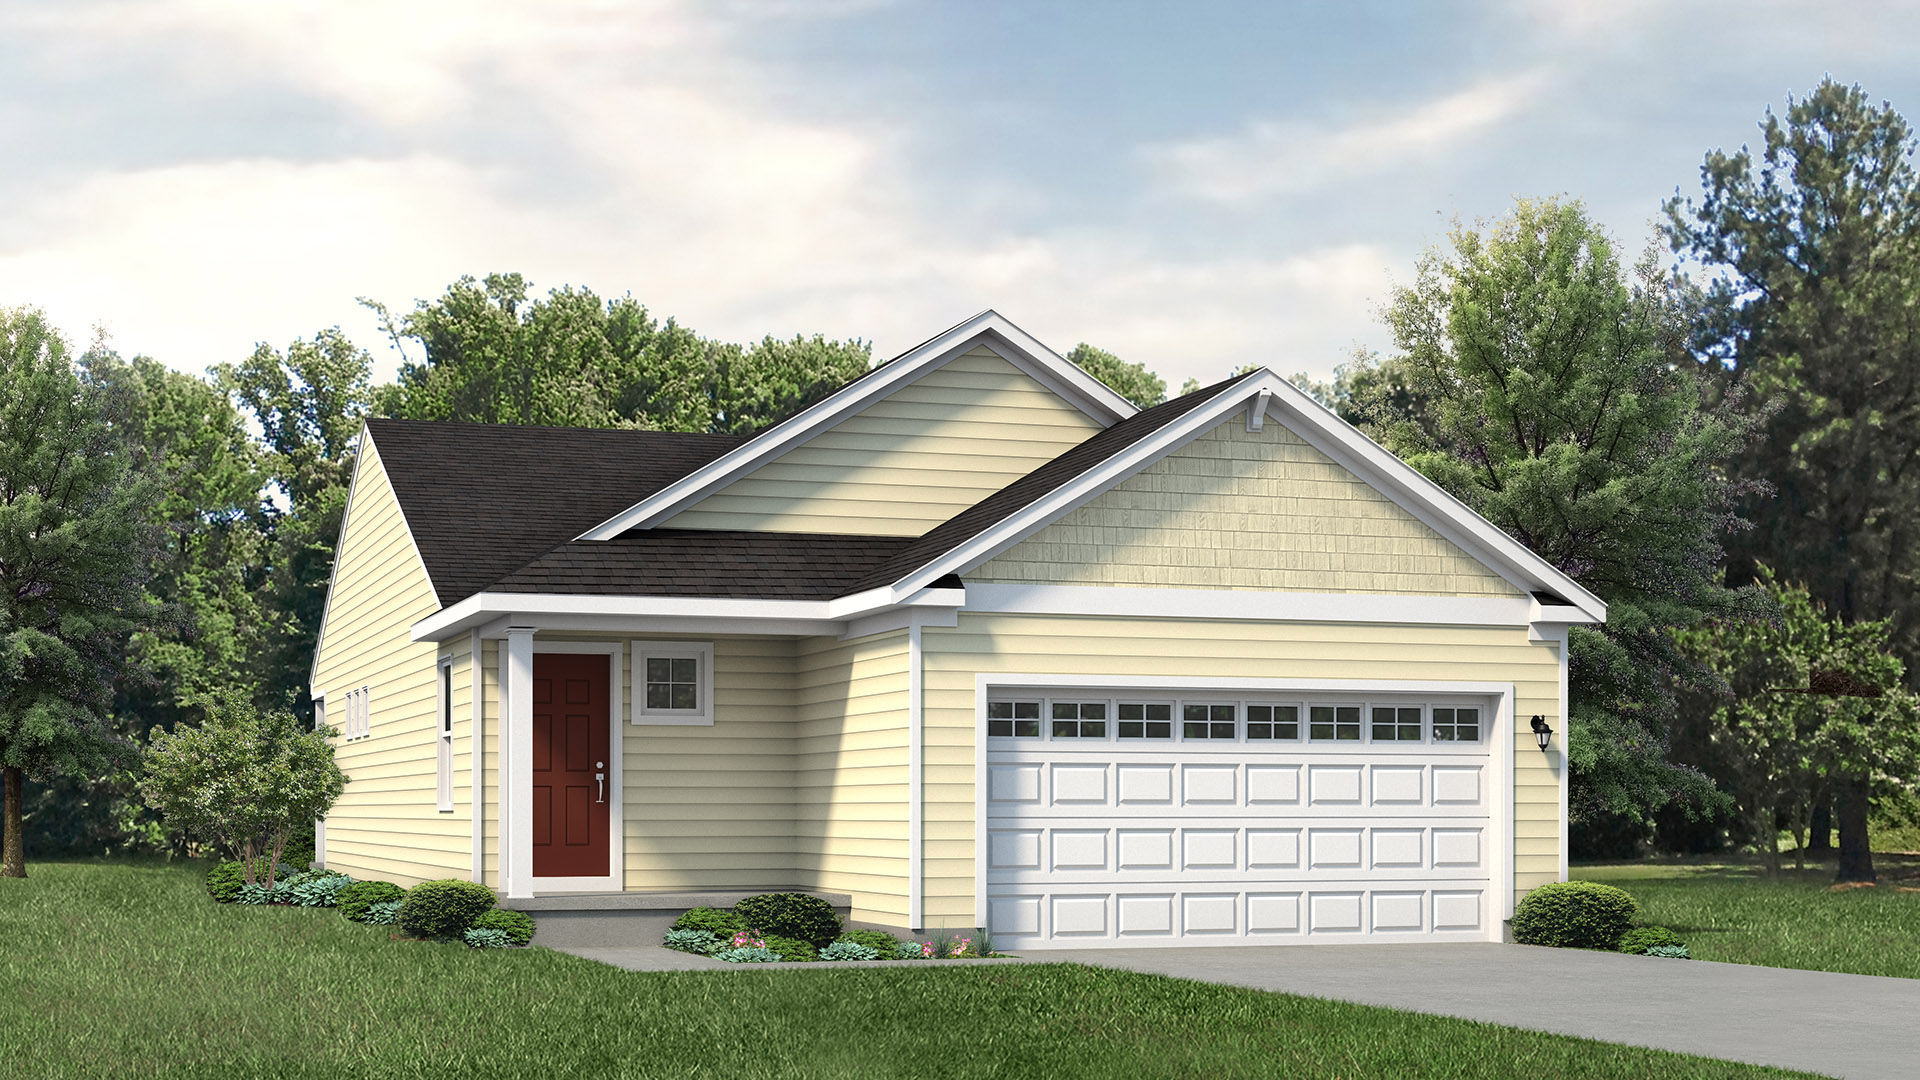 New Martinsburg Home Ready for Spring Move-In at Edgewood Acres